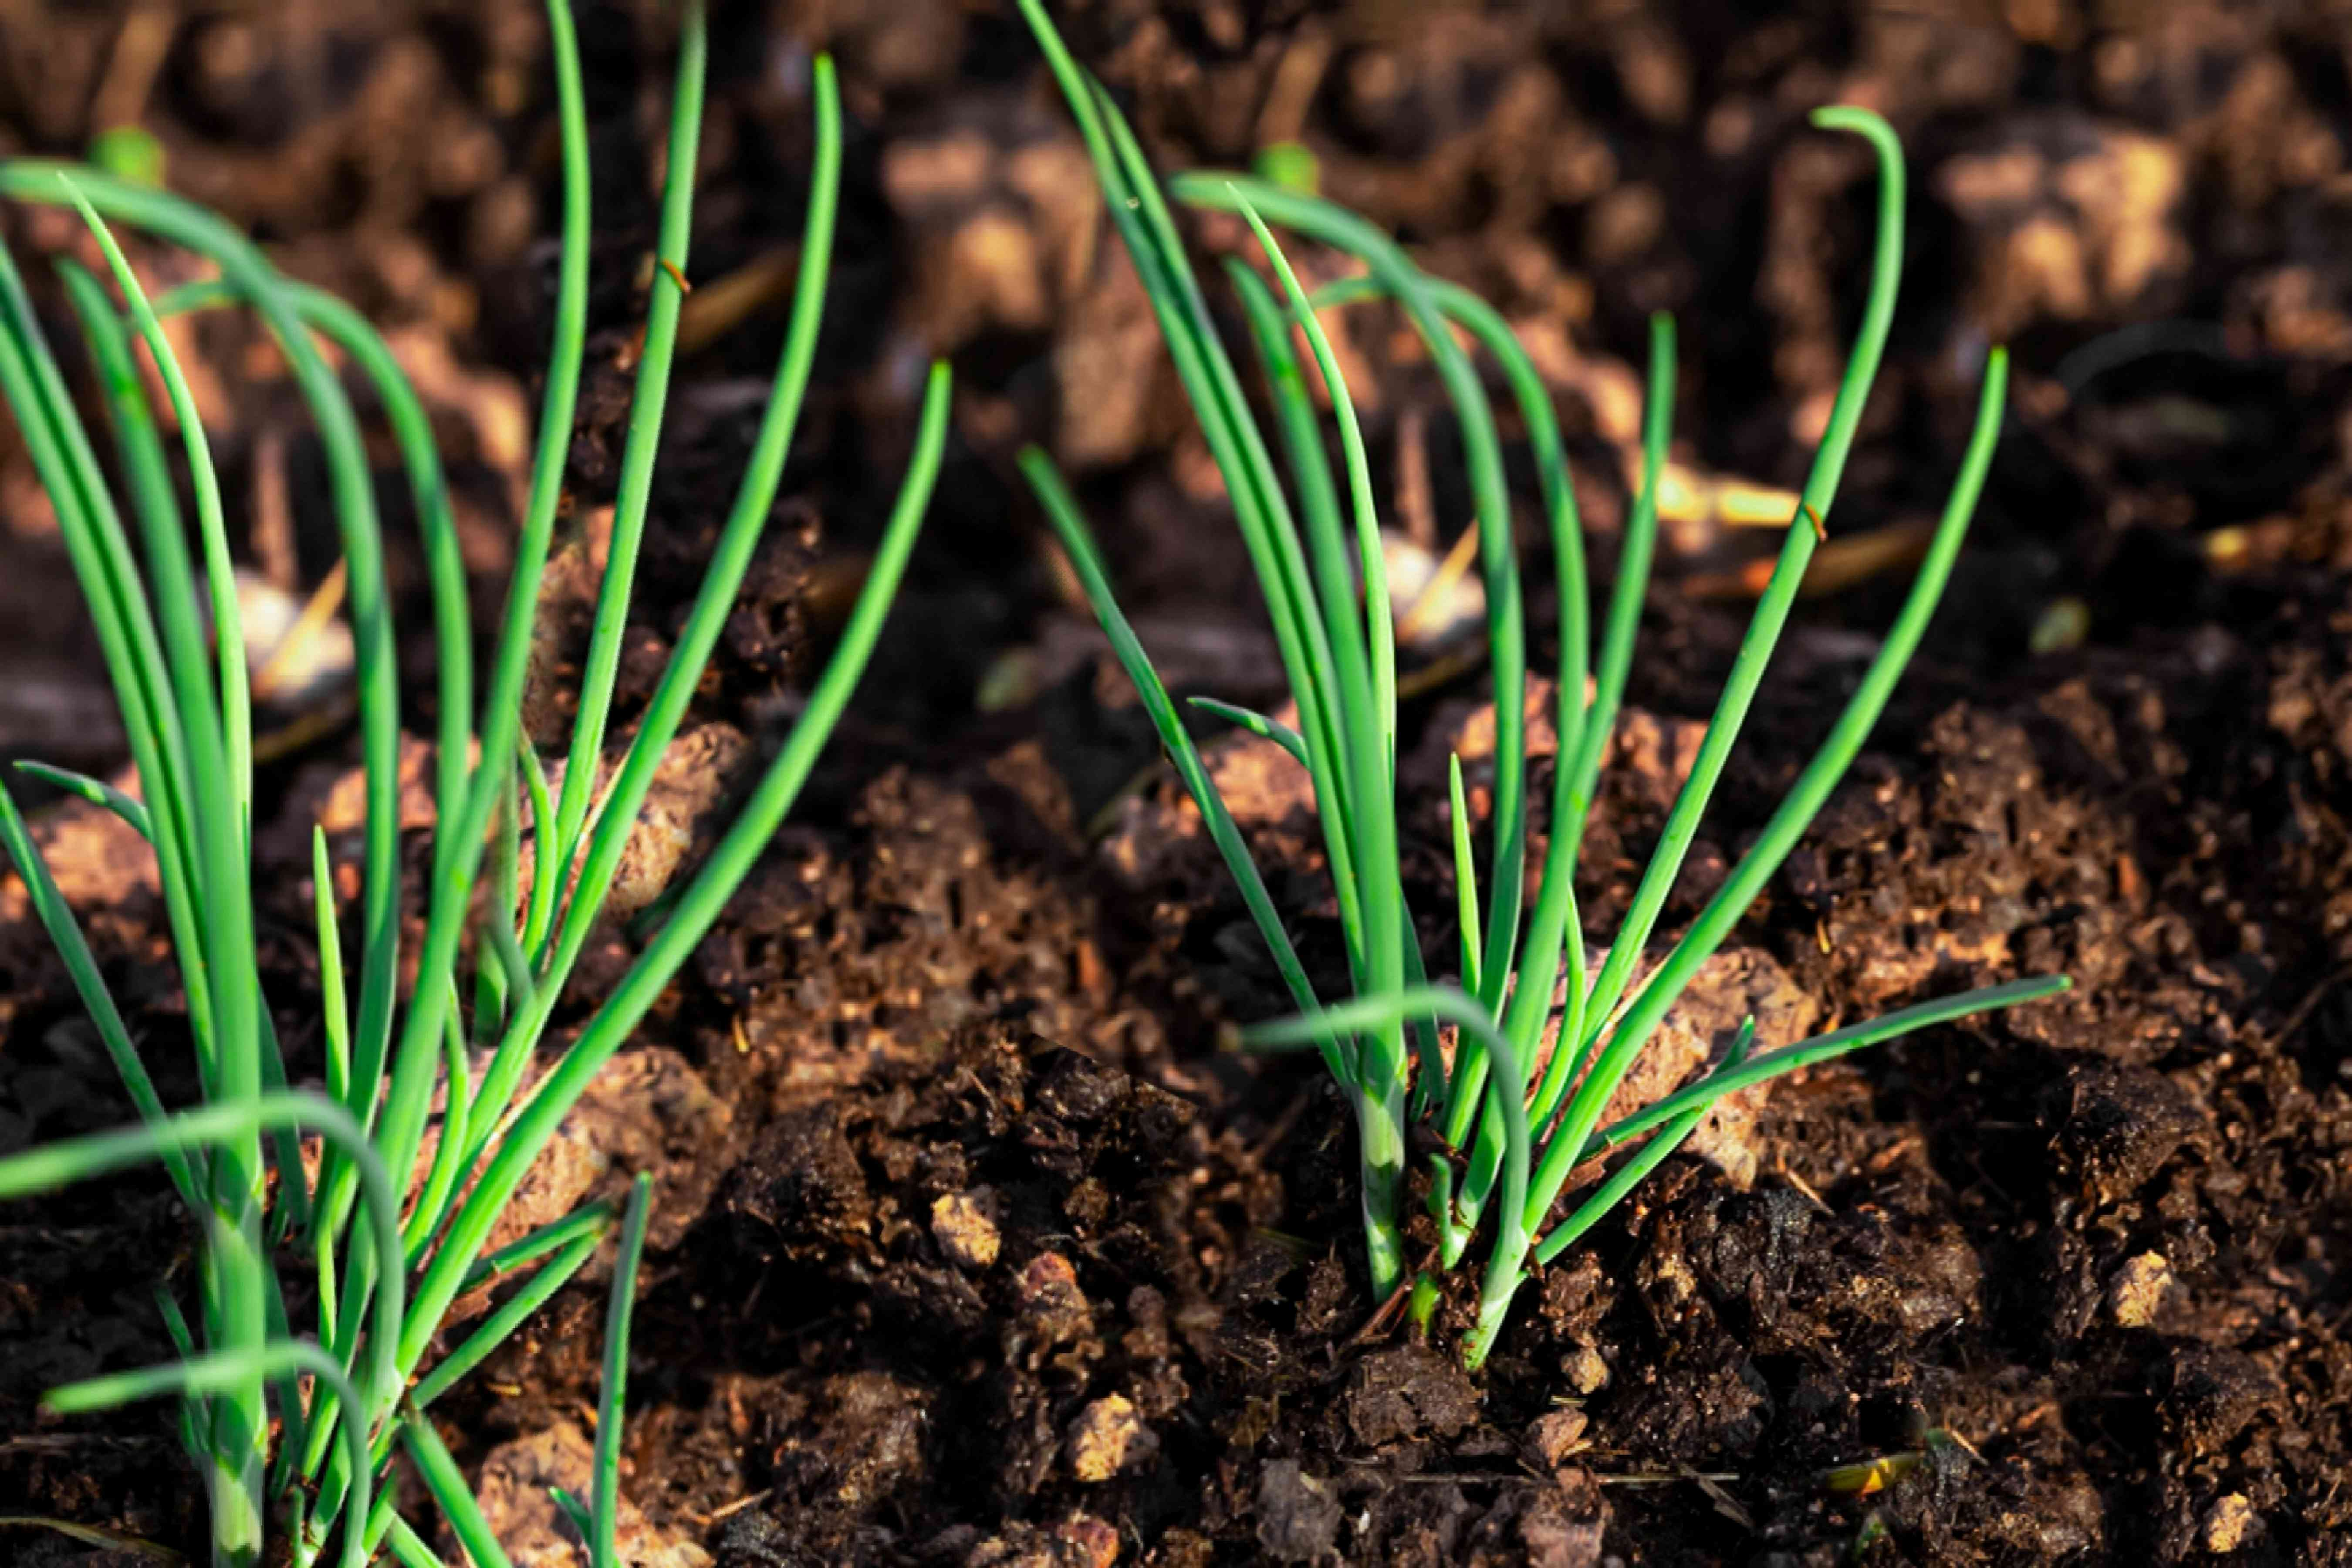 scallions poking out of the soil